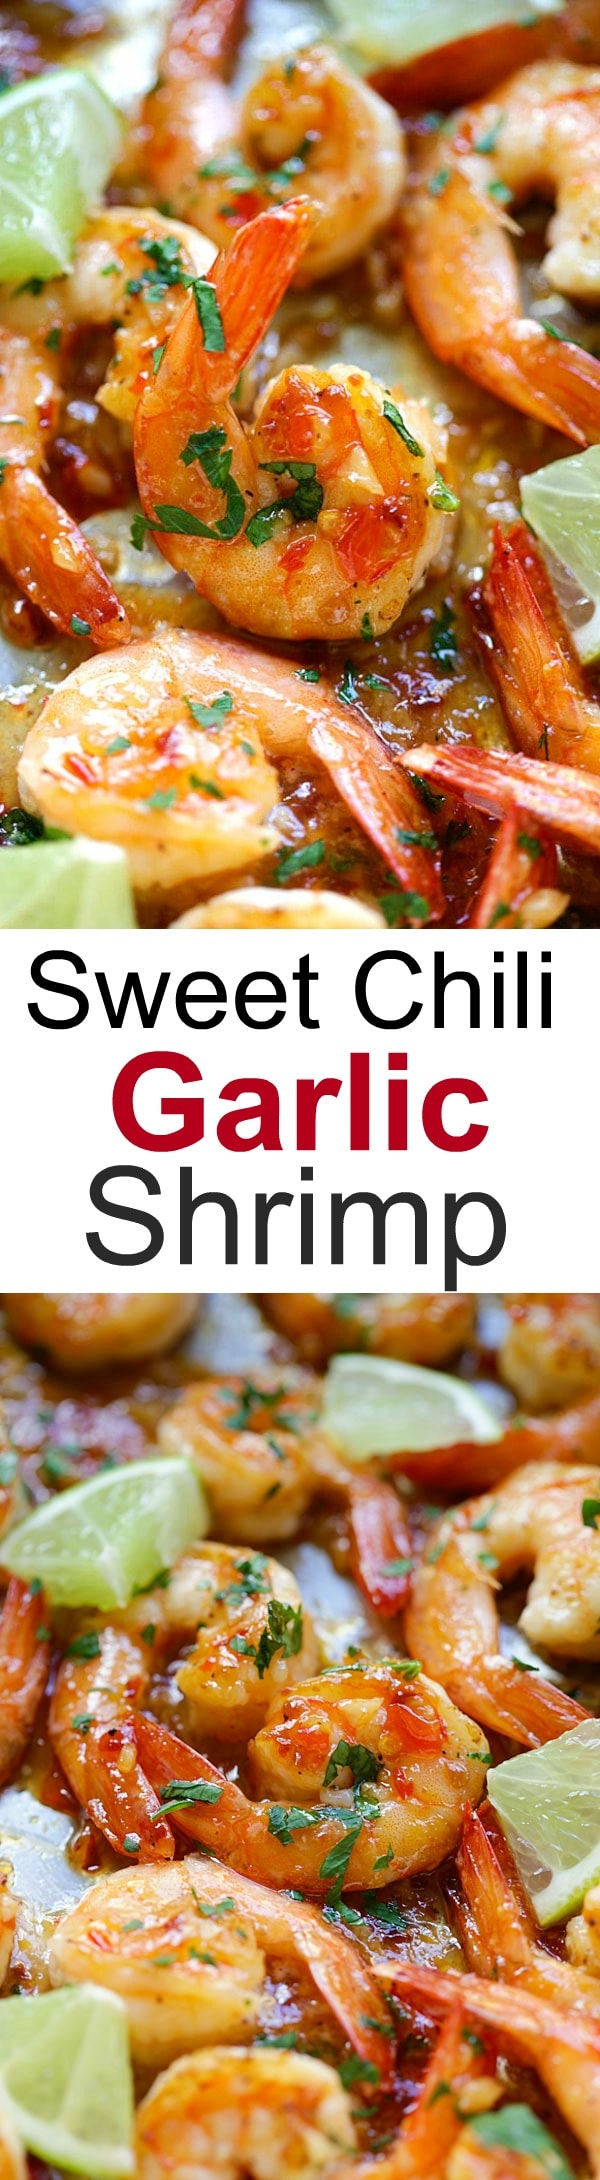 Sticky, sweet and savory chili shrimp with lime juice. This sweet chili shrimp recipe is so easy to make and takes 15 mins from start to finish | rasamalaysia.com